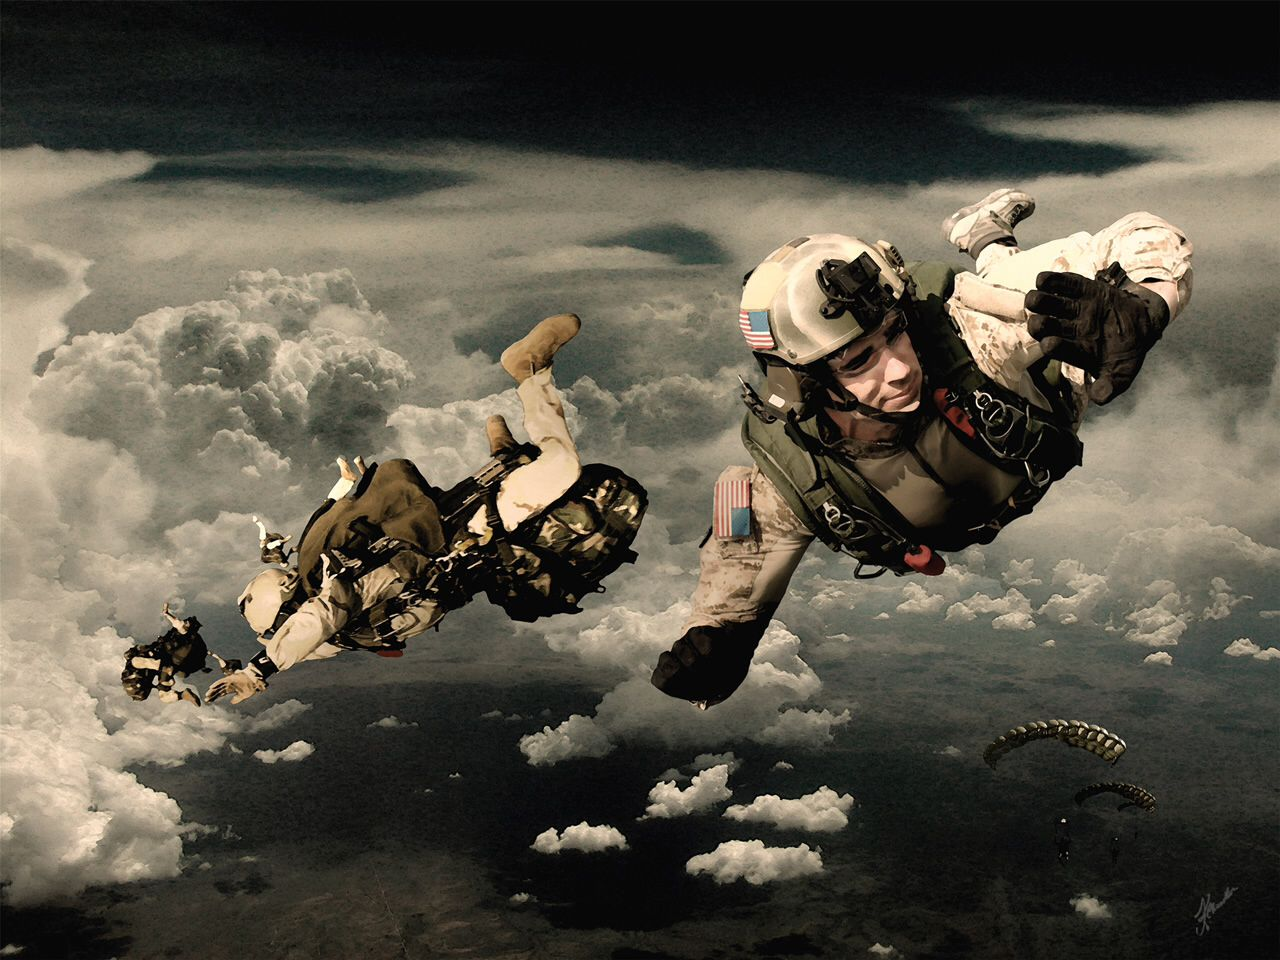 AFSOC PARARESCUE (PJs). REAL HEROES. U.S. Air Force